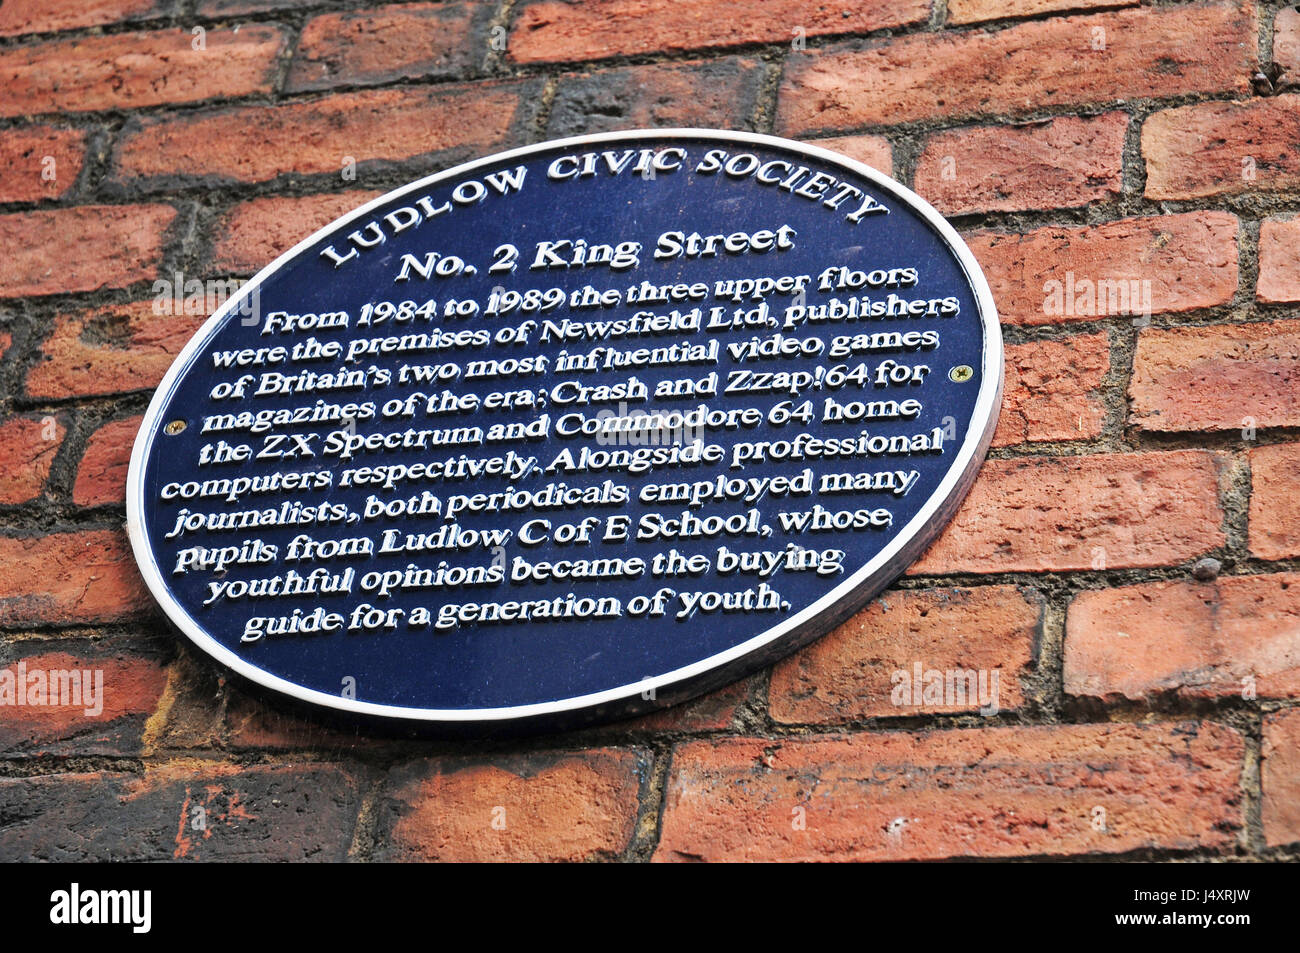 Round plaque commemorating Newsfield Ltd., Publishers of Crash and Zzap!64.  Ludlow. - Stock Image